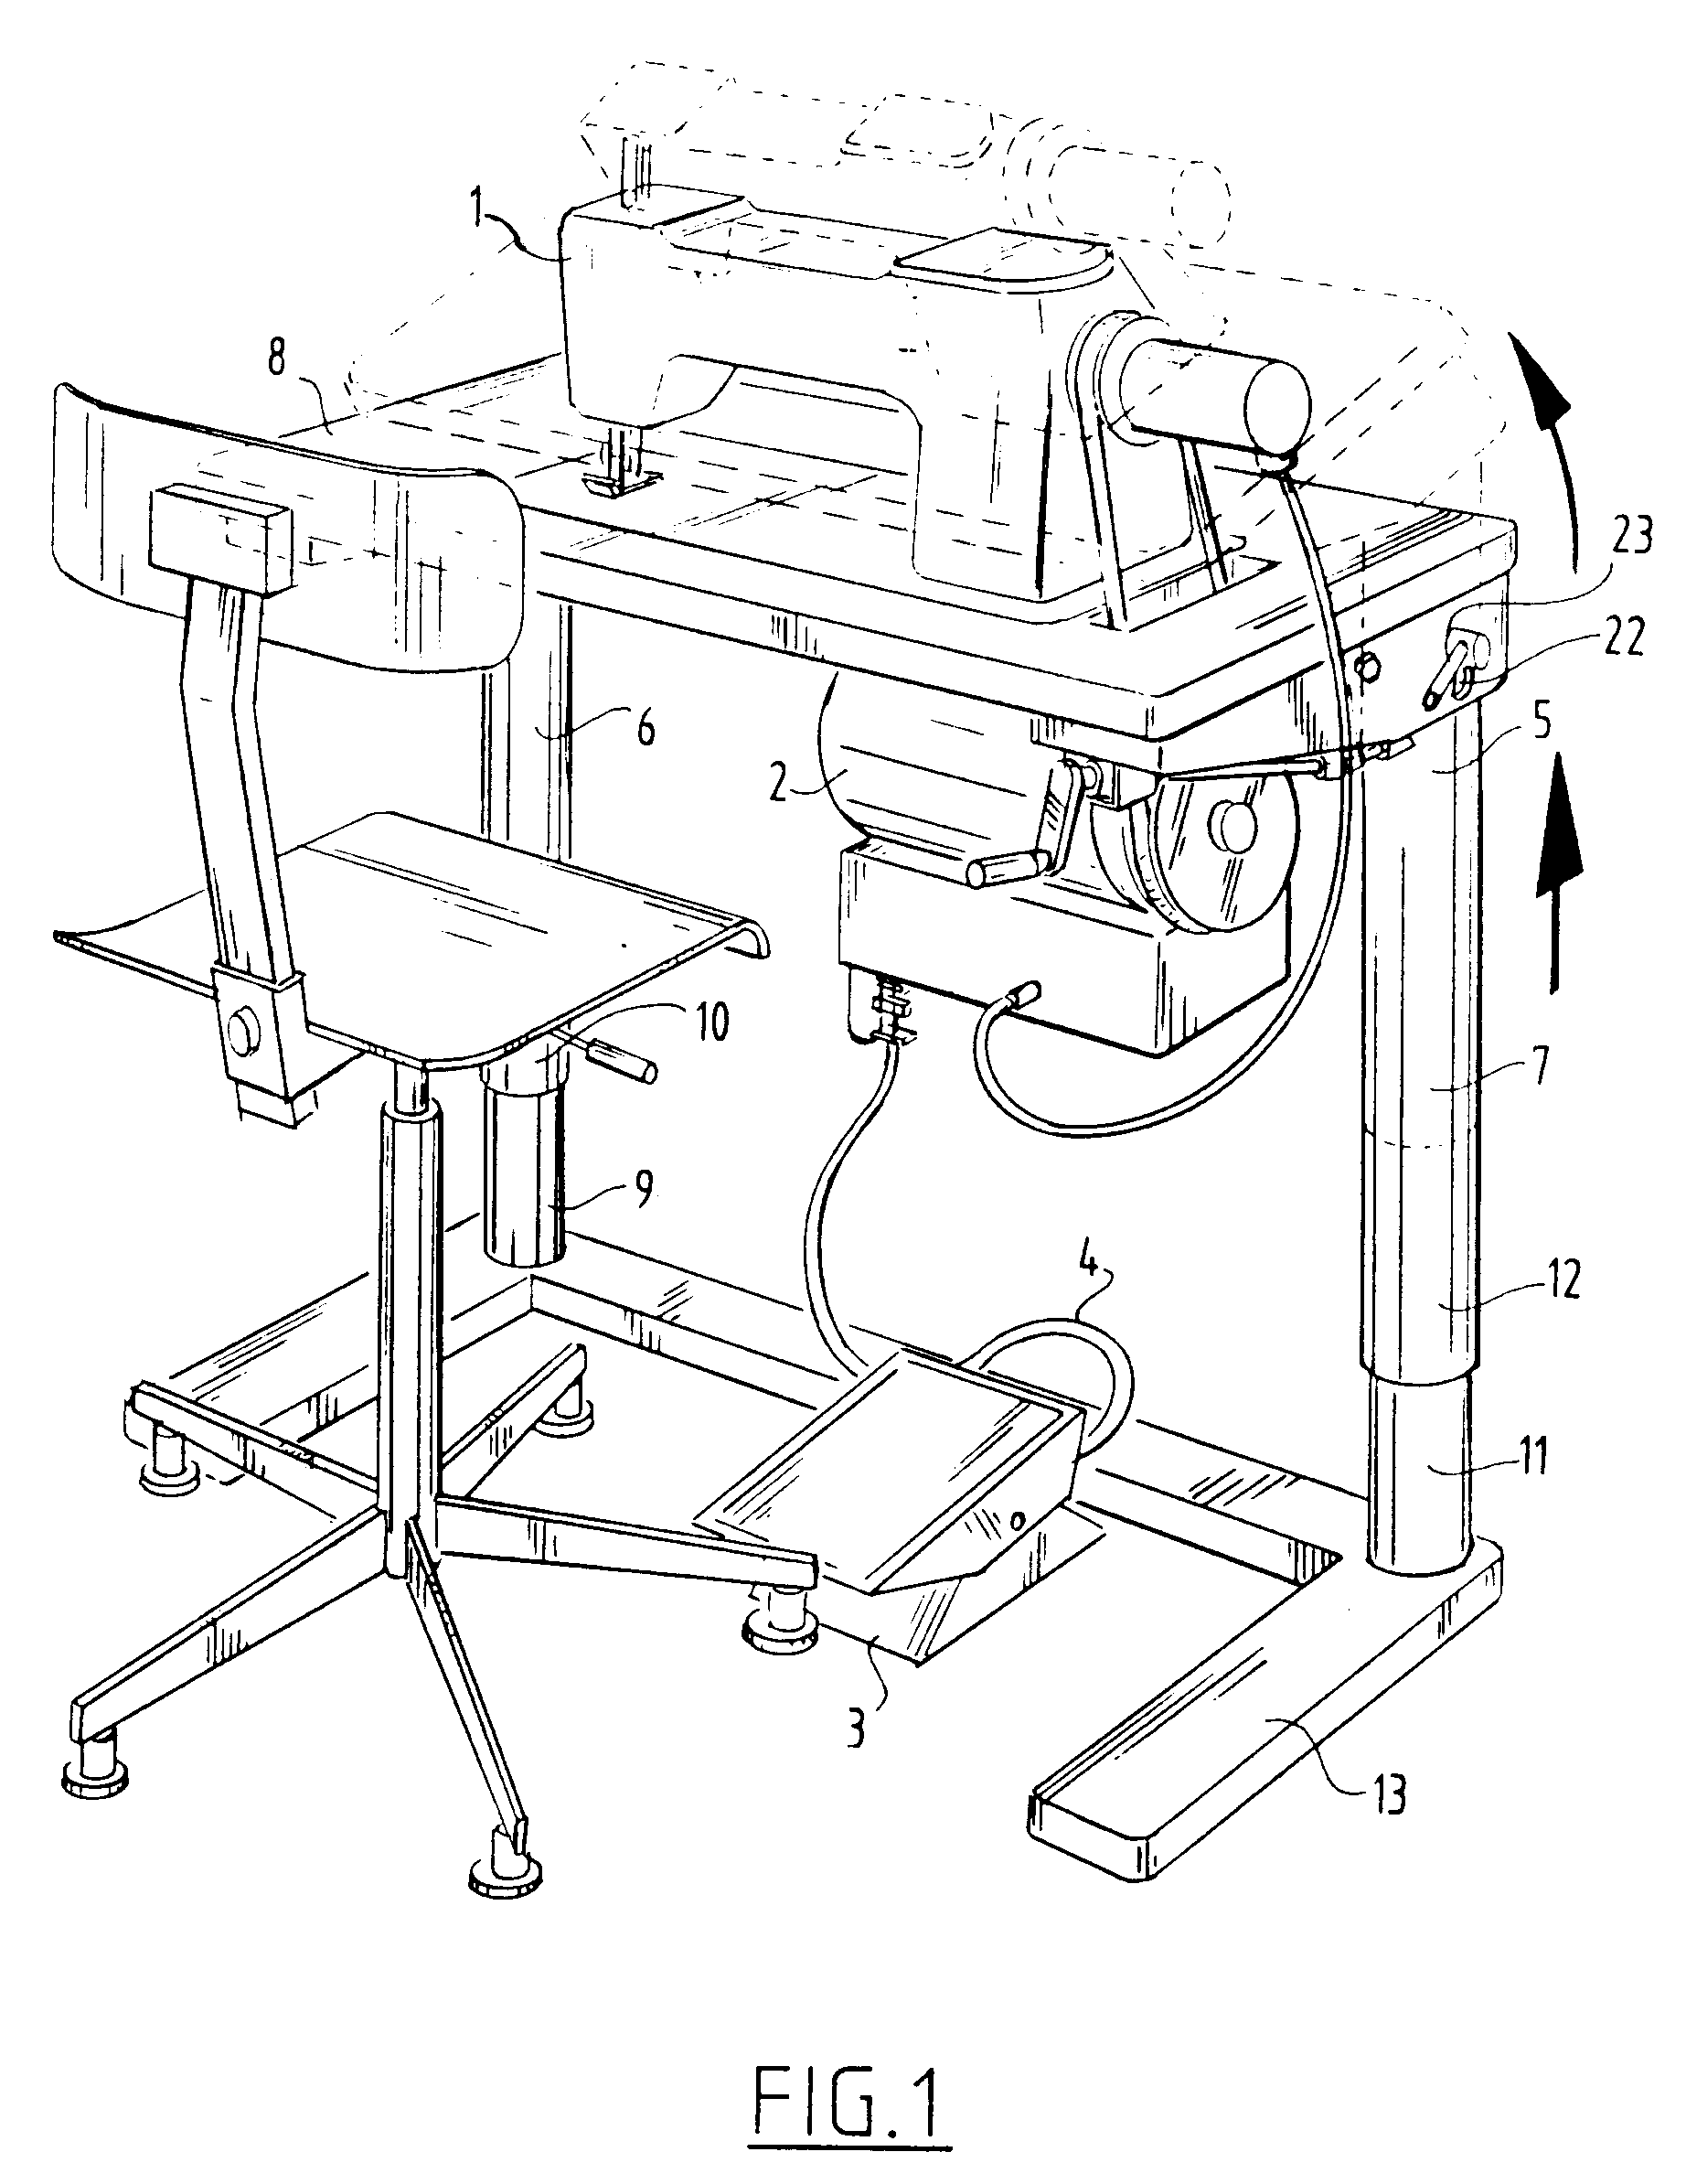 patent ep0426031b1 industrial sewing machine sewing. Black Bedroom Furniture Sets. Home Design Ideas